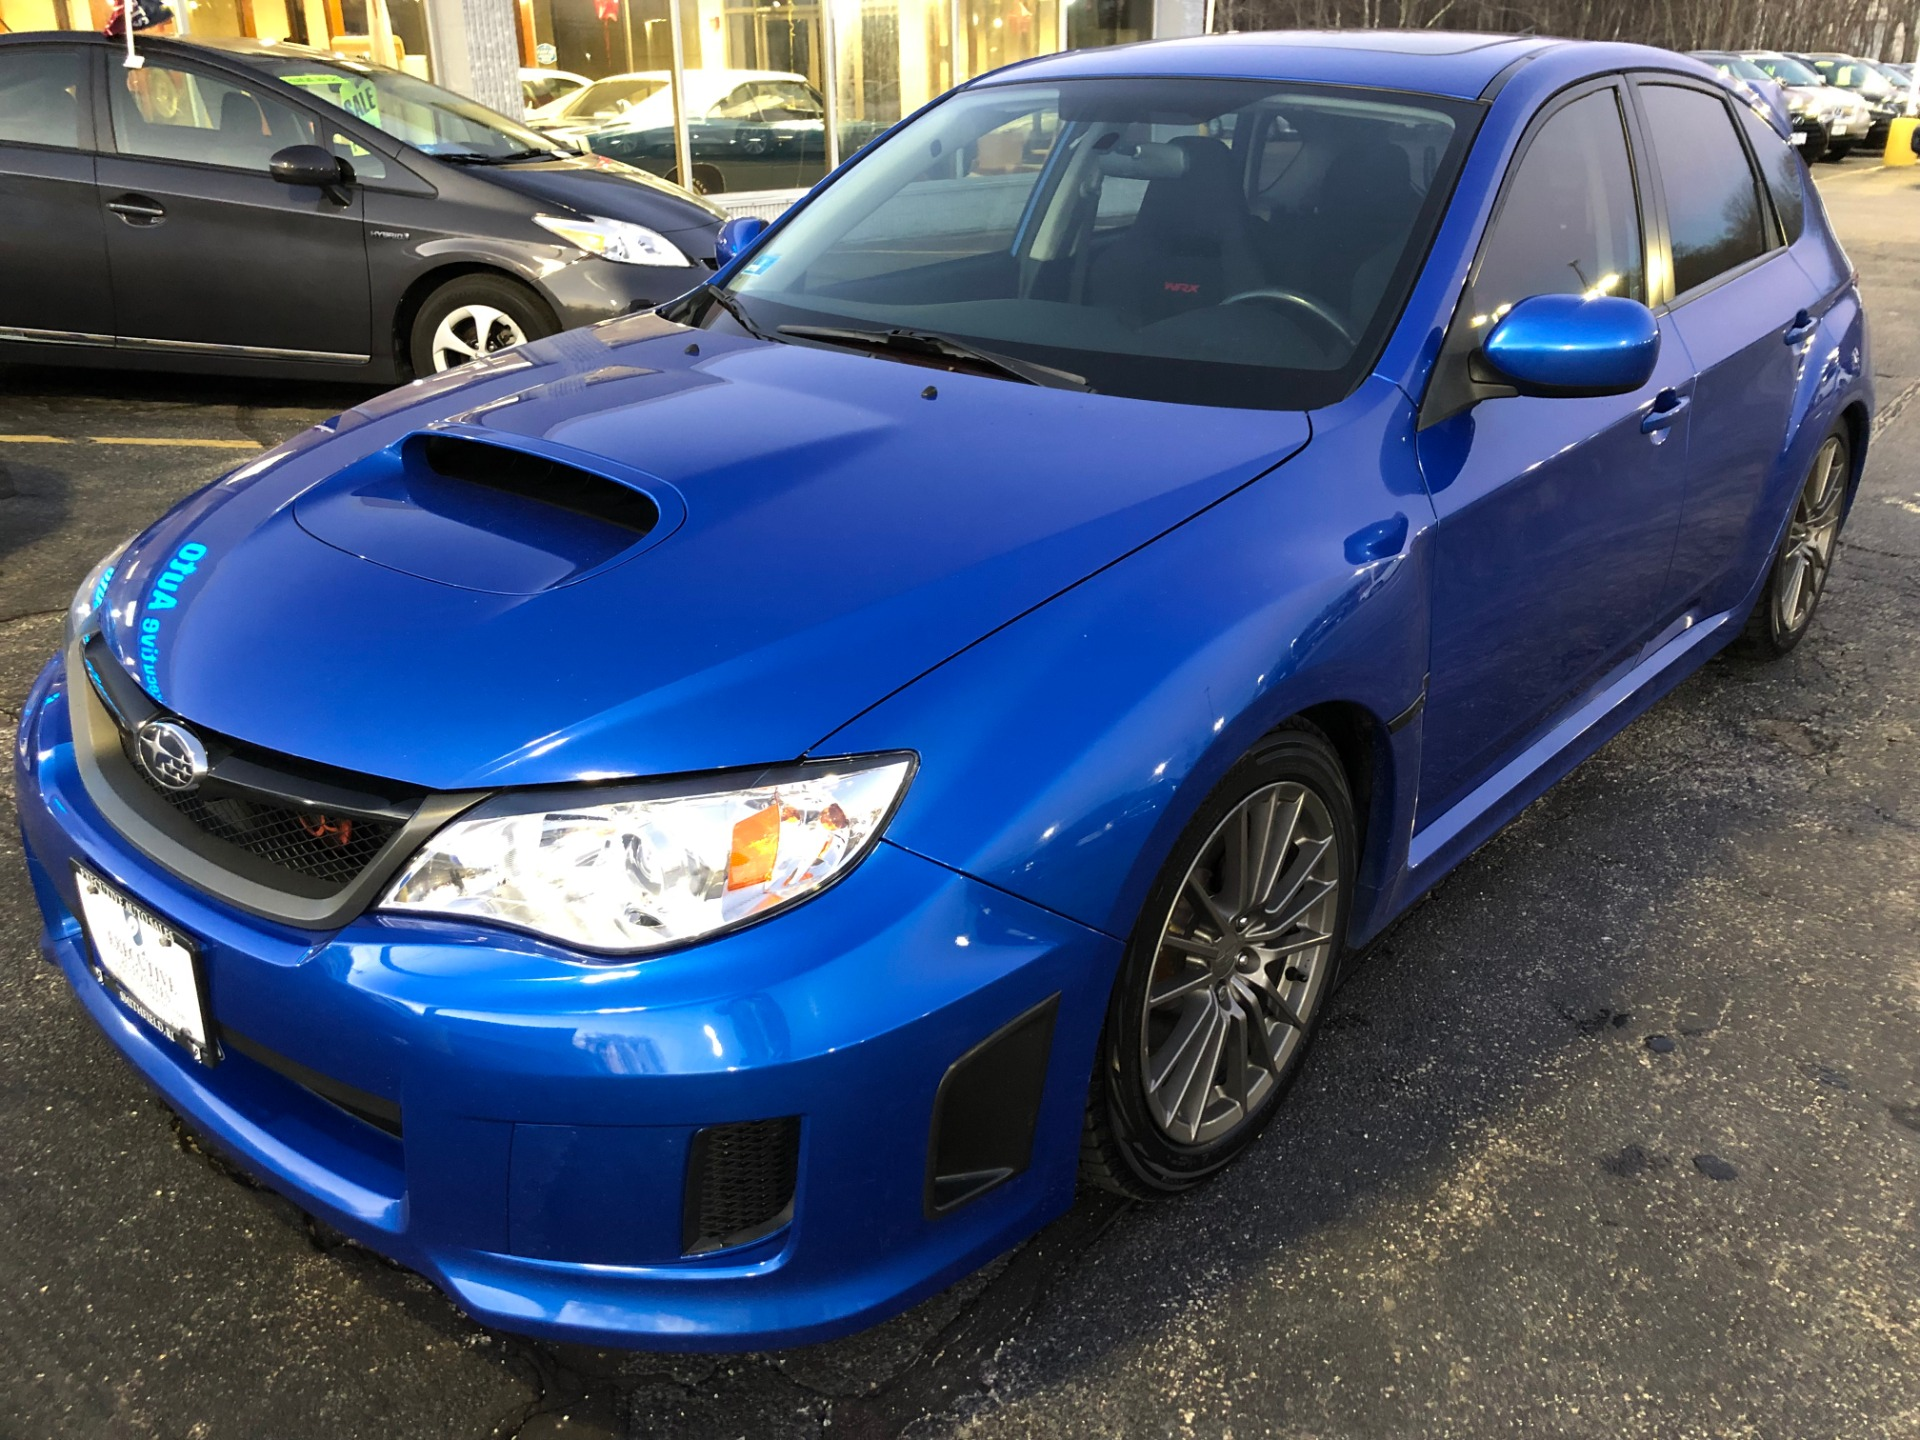 2014 subaru impreza wrx wrx stock 1850 for sale near smithfield ri ri subaru dealer. Black Bedroom Furniture Sets. Home Design Ideas